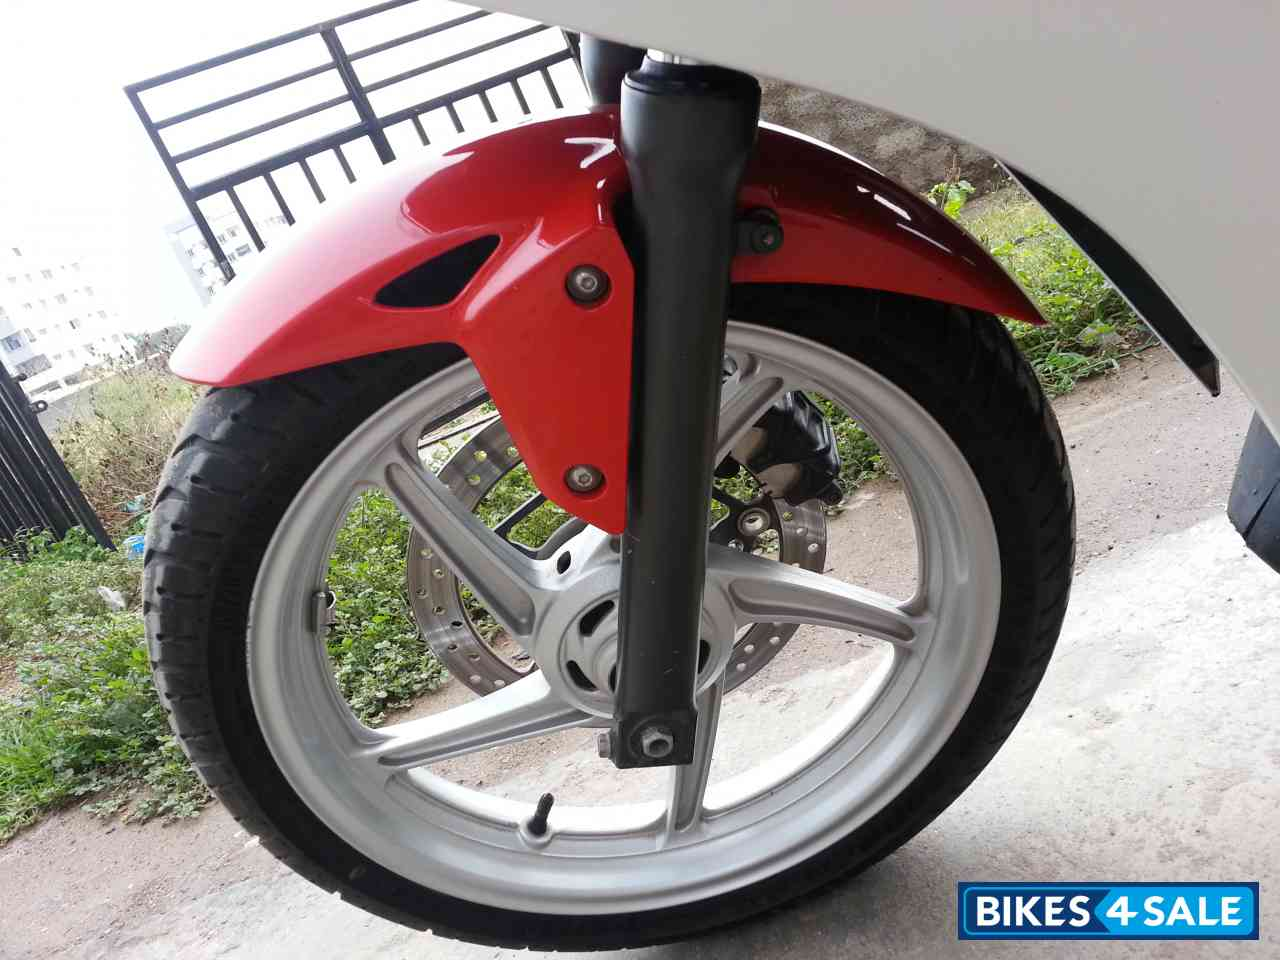 Icici Lombard 2 Wheeler Insurance Price >> Tricolour(phb) Honda CBR 250R for sale in Hyderabad. Hi, Planning to sell off my HONDA CBR 250R ...